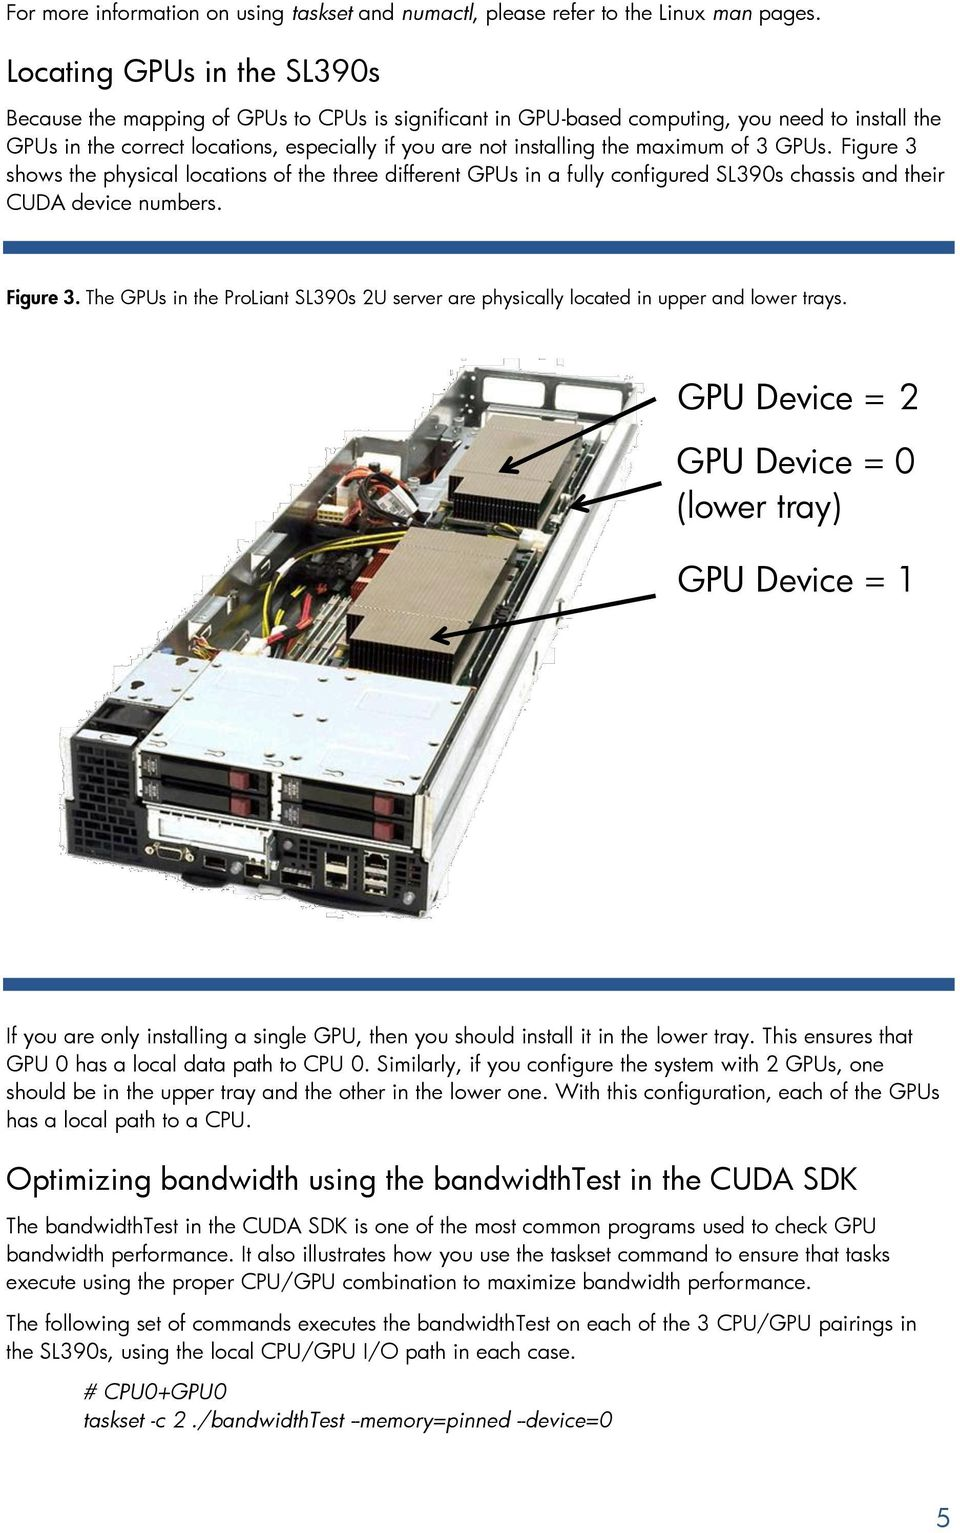 maximum of 3 GPUs. Figure 3 shows the physical locations of the three different GPUs in a fully configured SL390s chassis and their CUDA device numbers. Figure 3. The GPUs in the ProLiant SL390s 2U server are physically located in upper and lower trays.